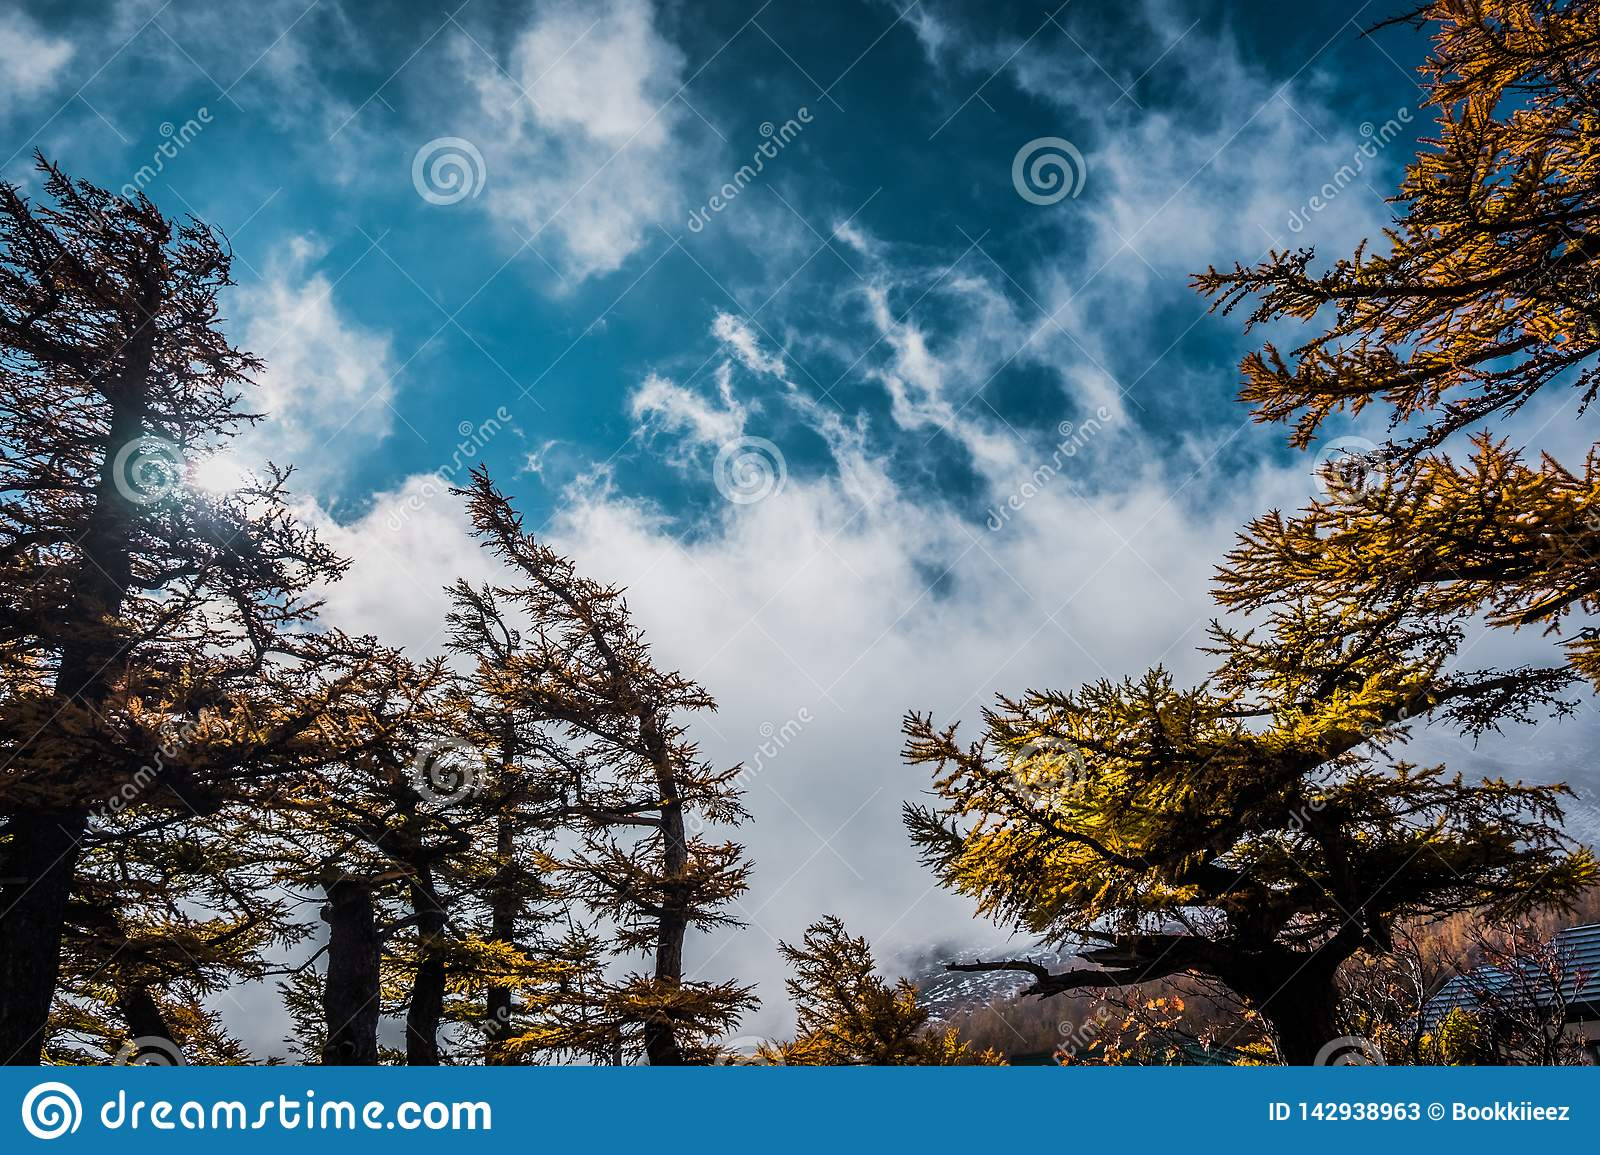 Landscape of tree and cloud with blue sky, view from Fuji Subaru Line 5th Station.